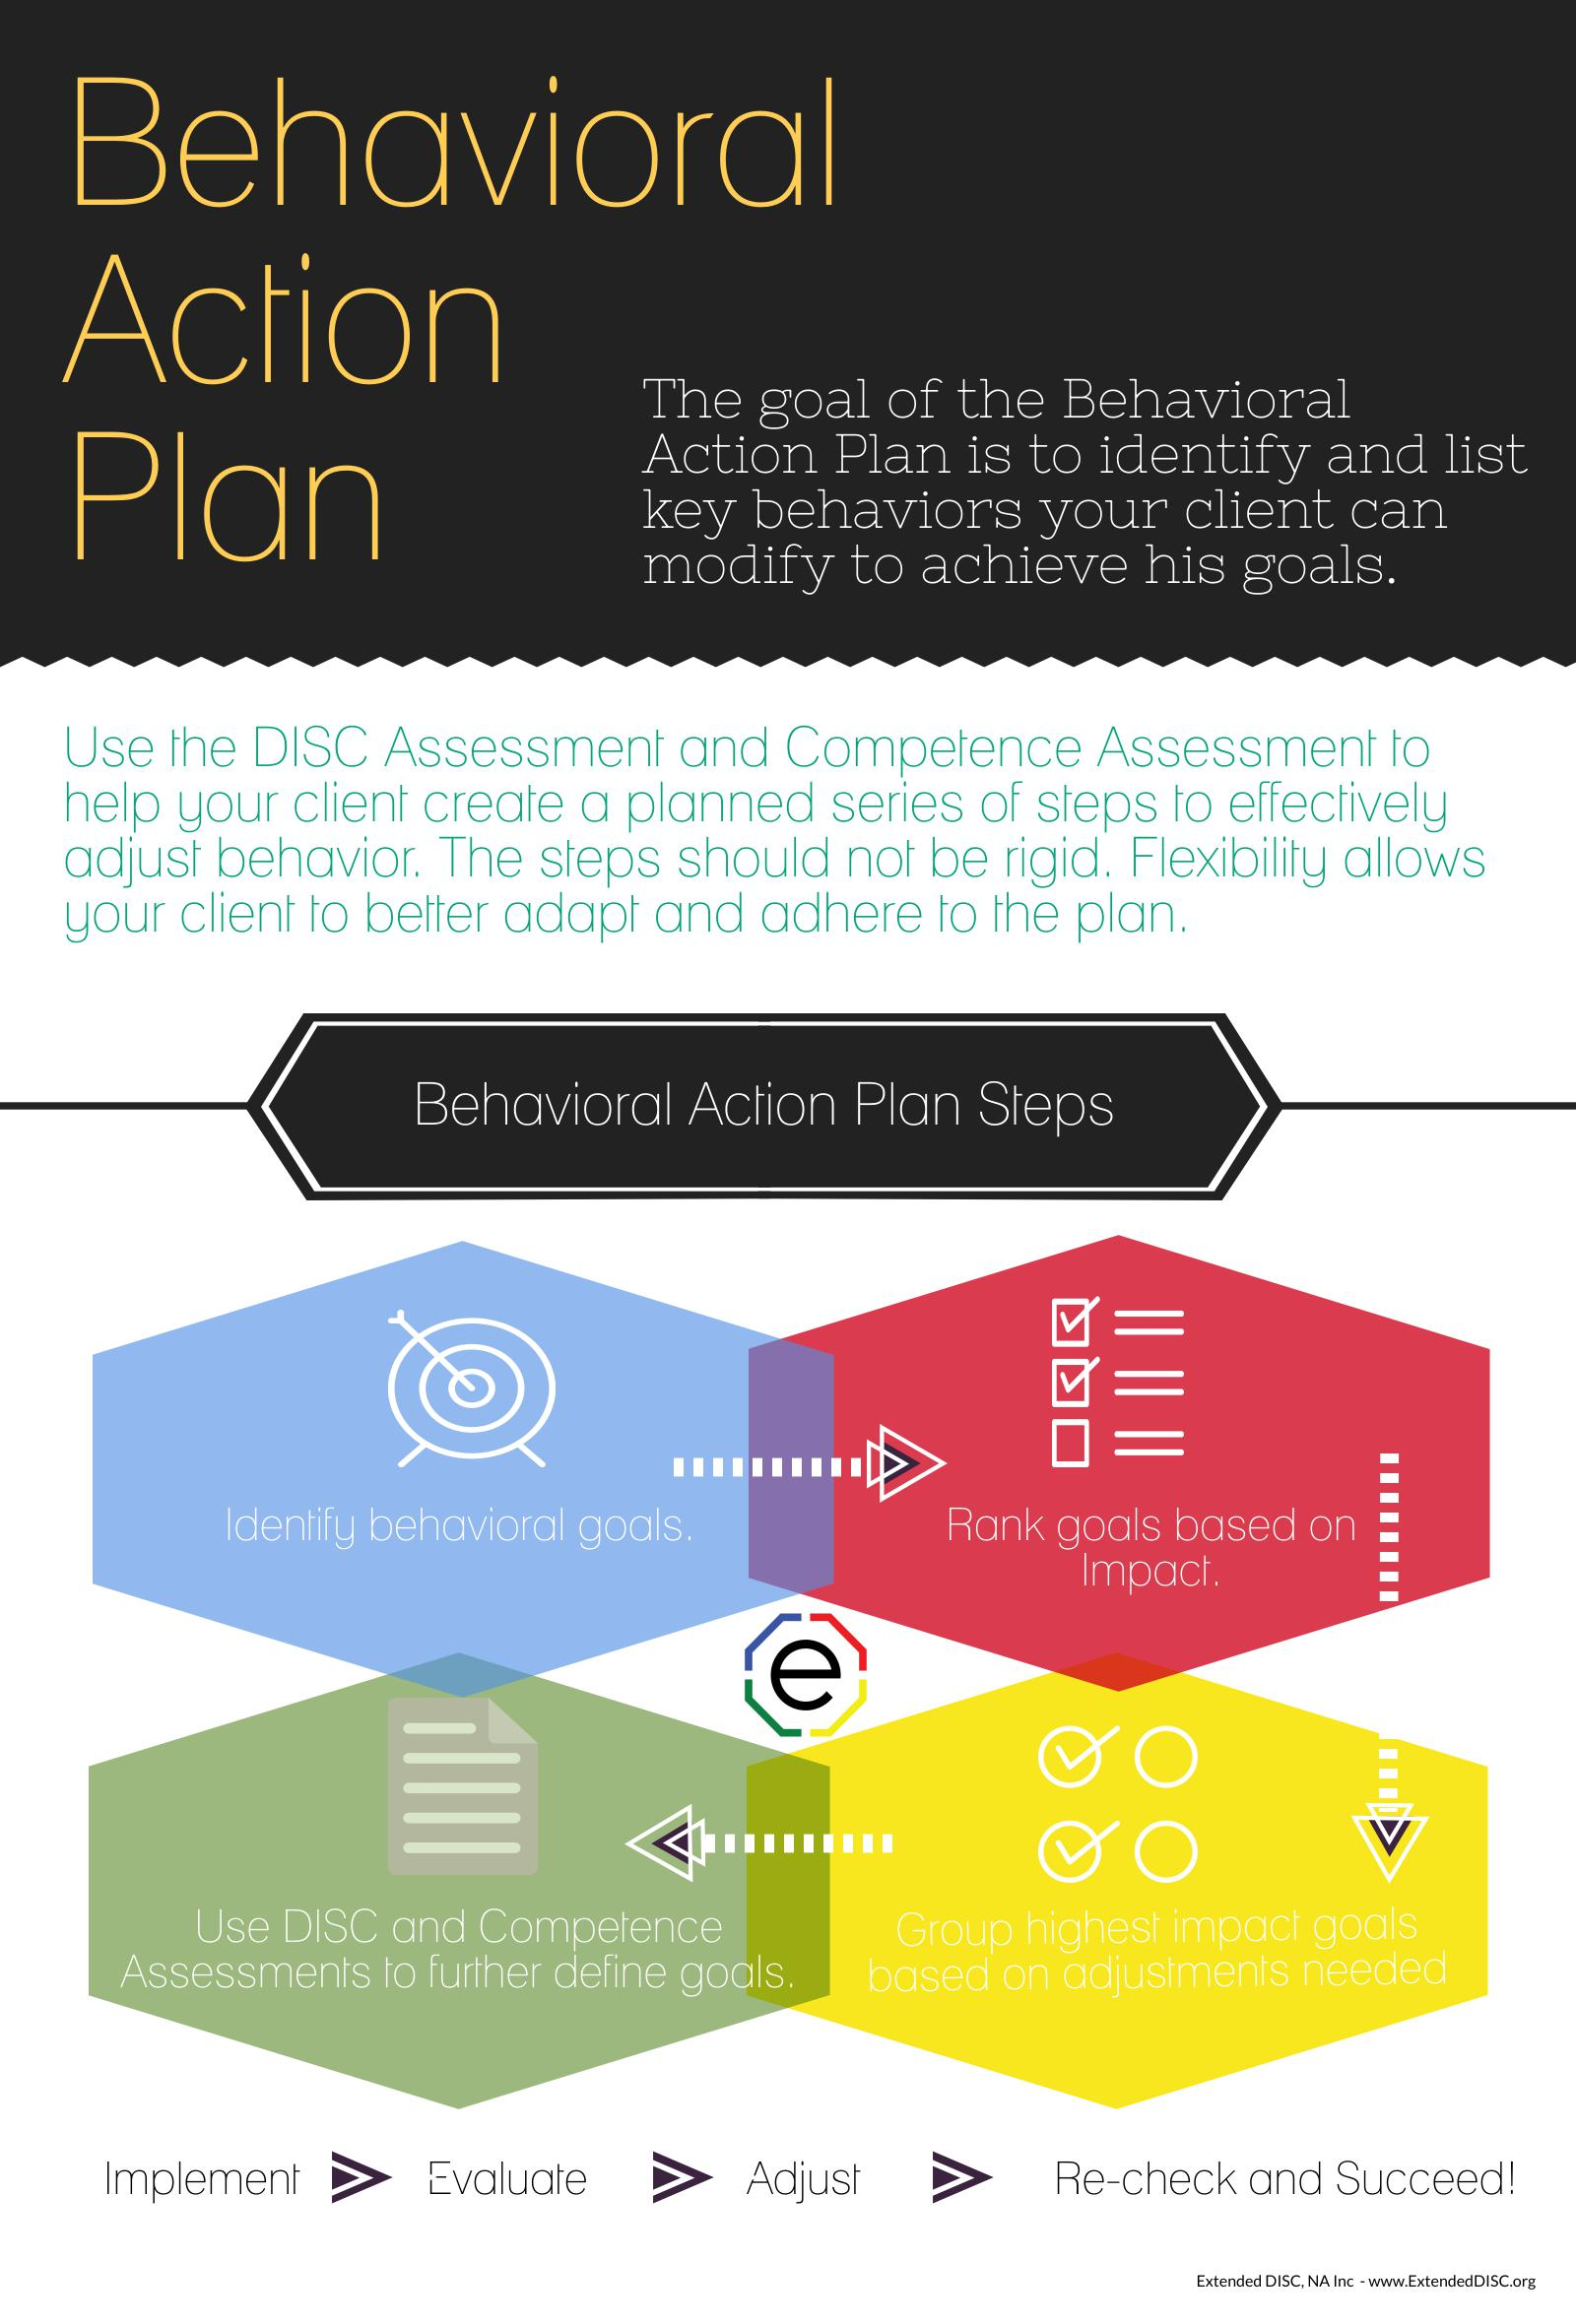 Behavioral Action Plan